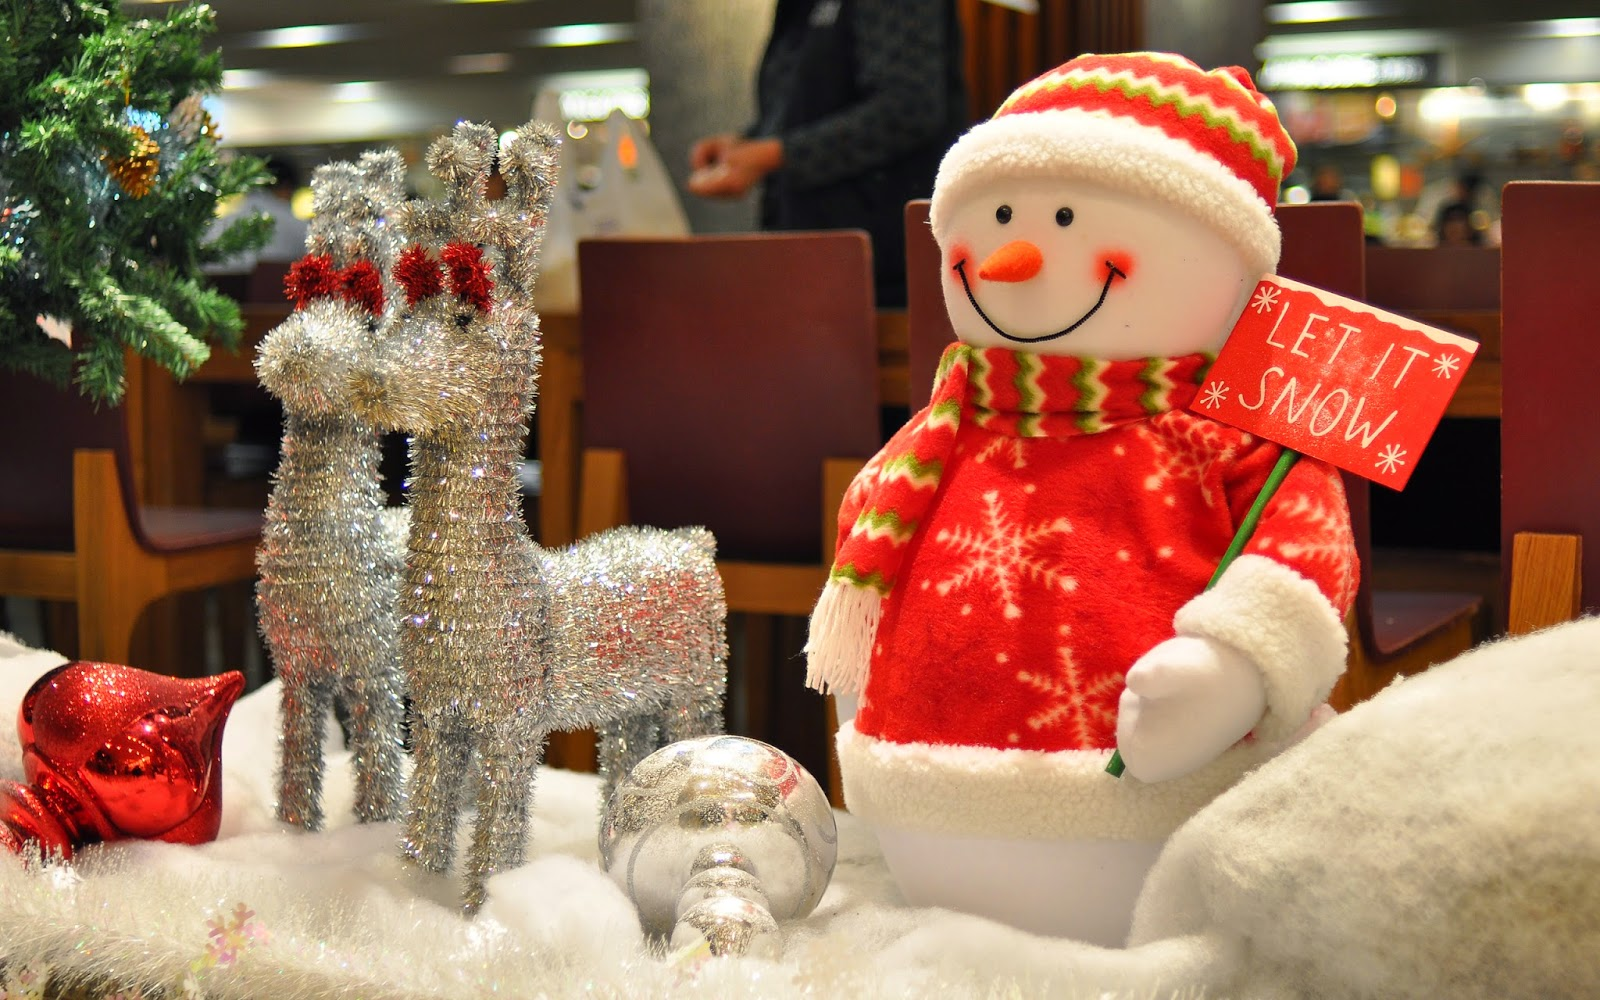 let-it-snow-snowman-board-doll-home-decoration-ideas-images-wallpapers-HD.jpg